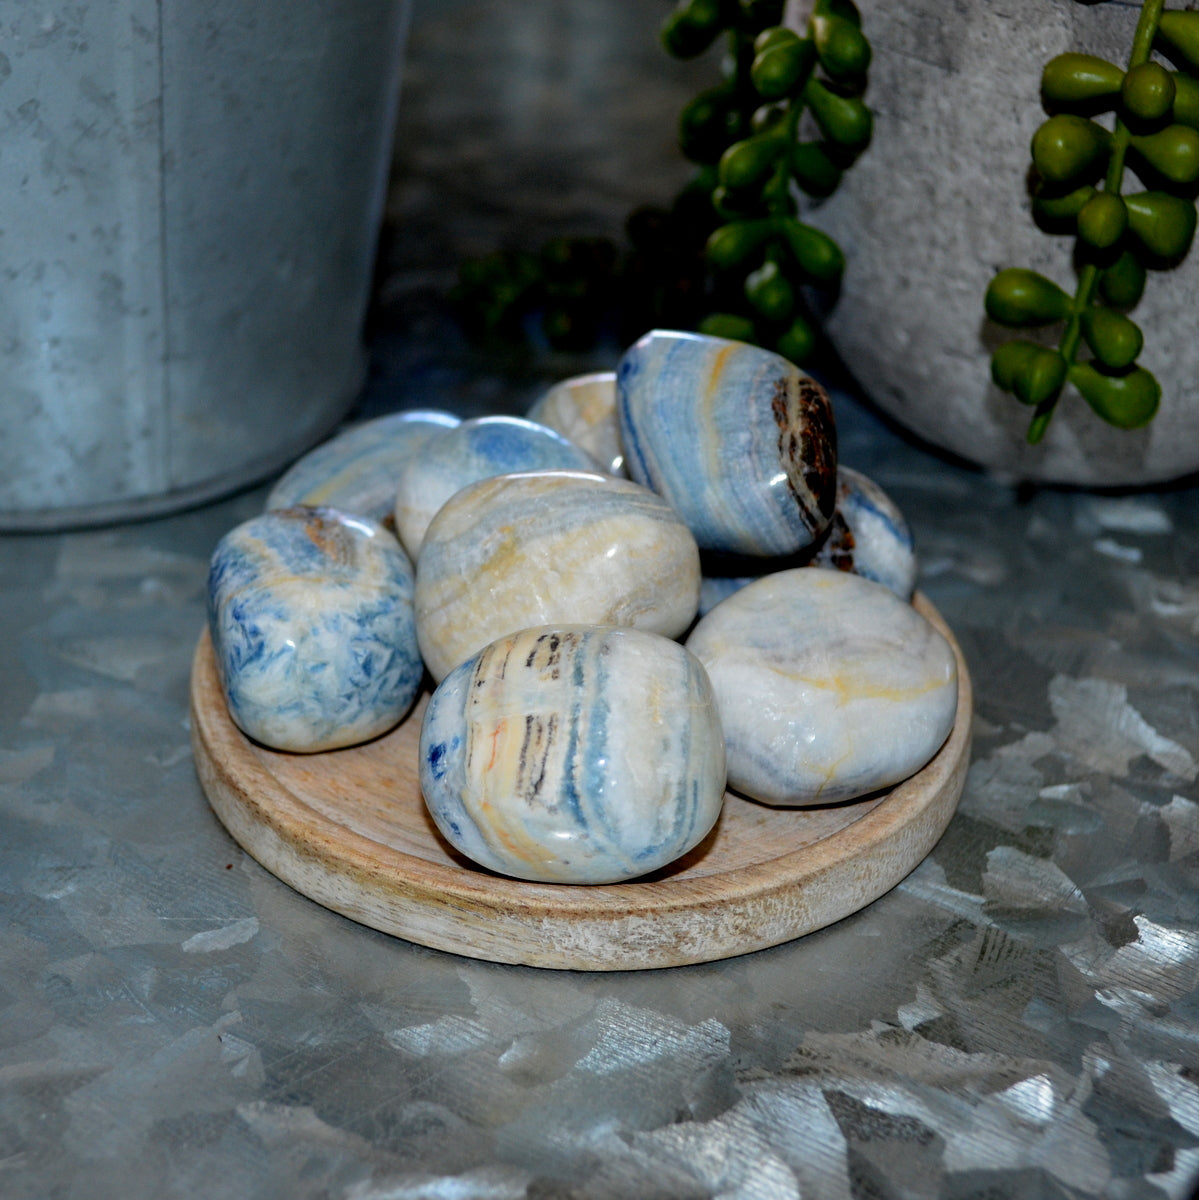 Blue Scheelite Turkey Tumble Stone at Illiom Crystals - Afterpay Available